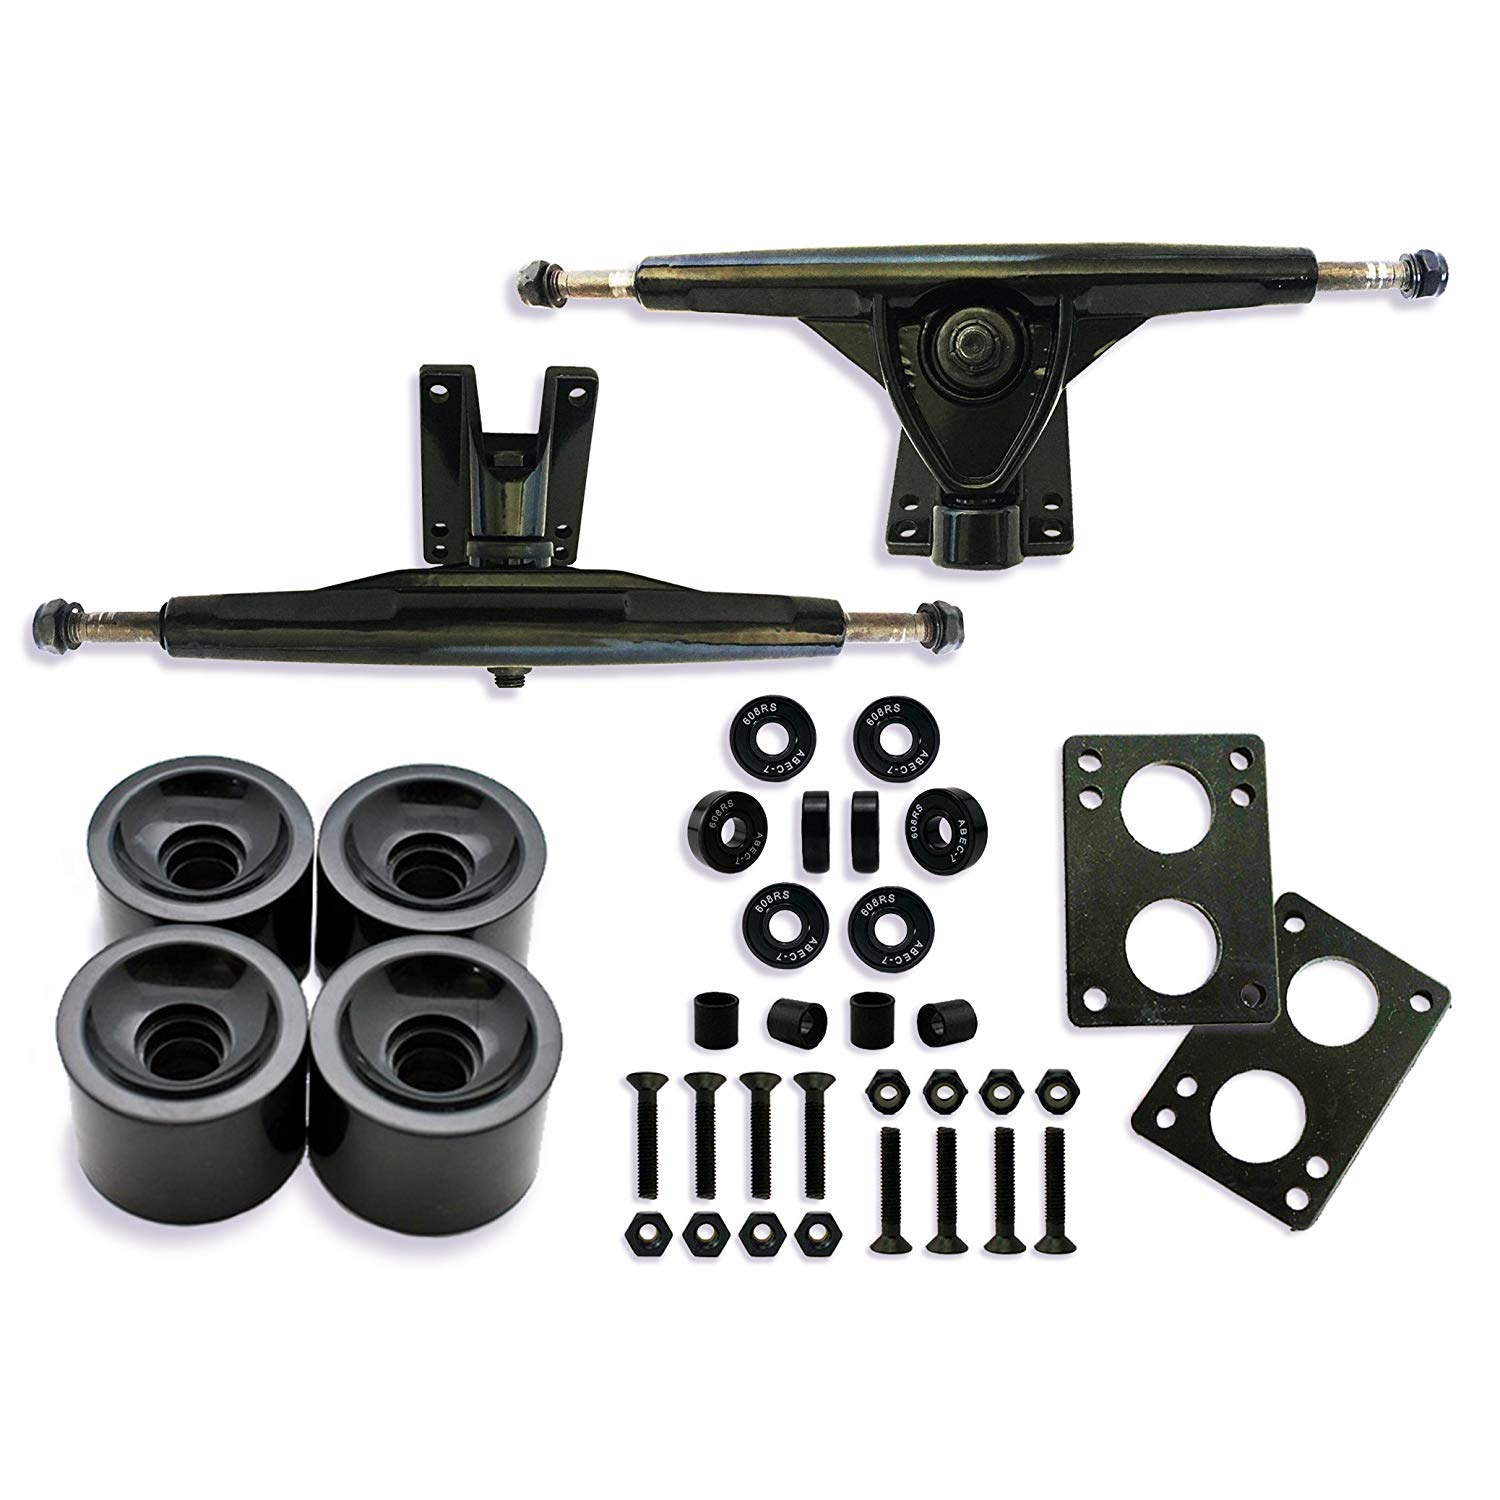 Longboard Skateboard Package, 7inch Aluminum Trucks Black, 70mm longboard wheel set, Skateboard Bearings, Skateboard Pads 6mm, Skateboard Hardware 1.5 inchboard trucks longboard truck and wheel set